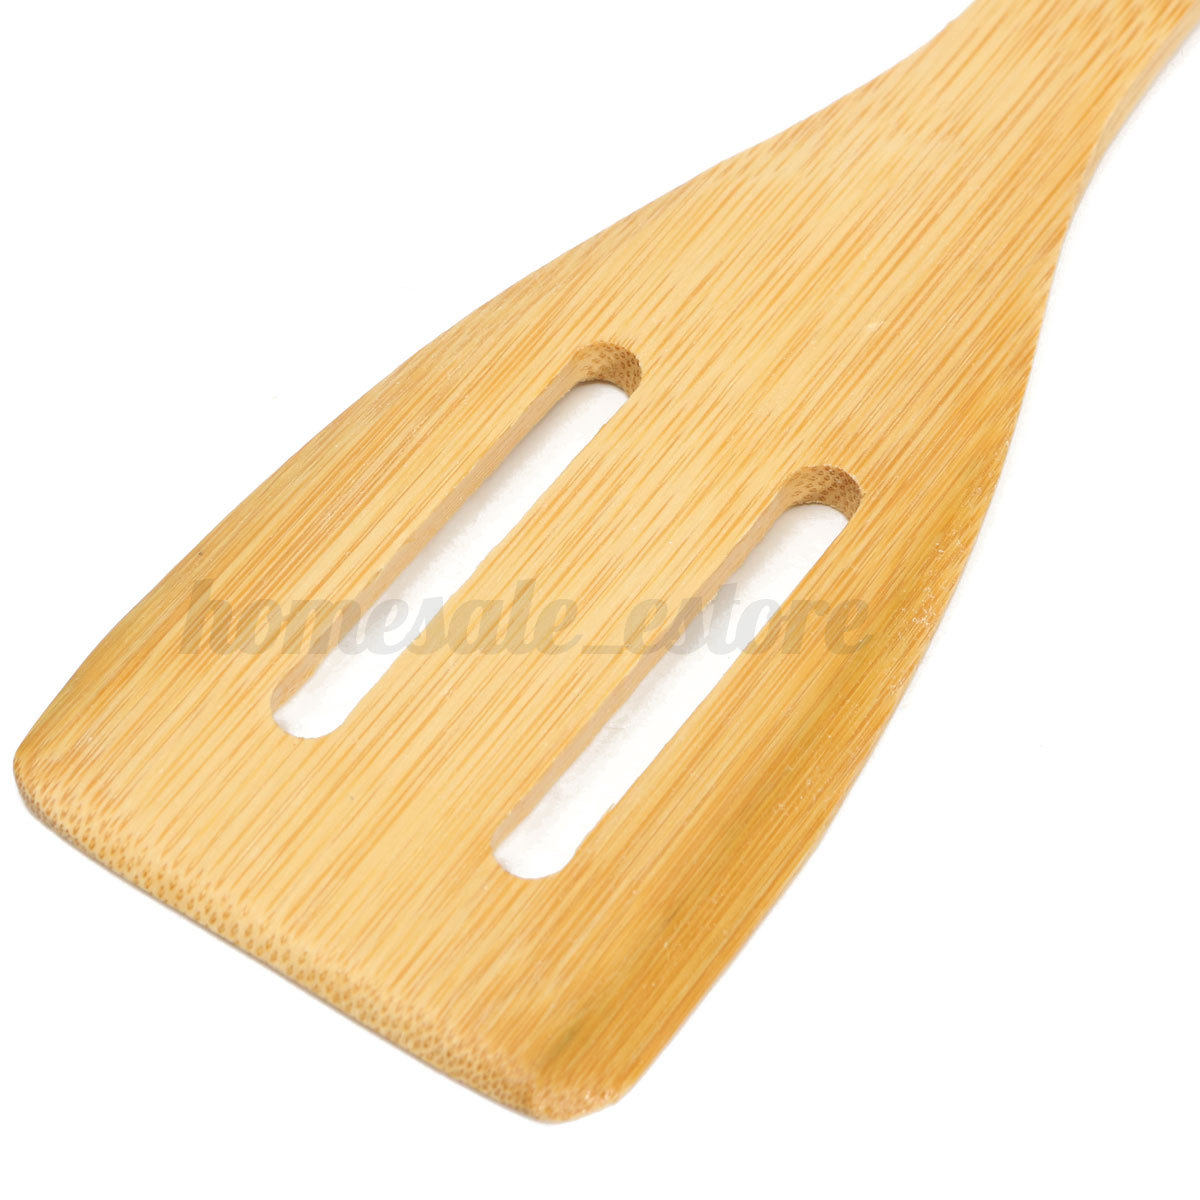 7 piece set bamboo utensil kitchen wooden cooking tools for Kitchen tool 6pcs set